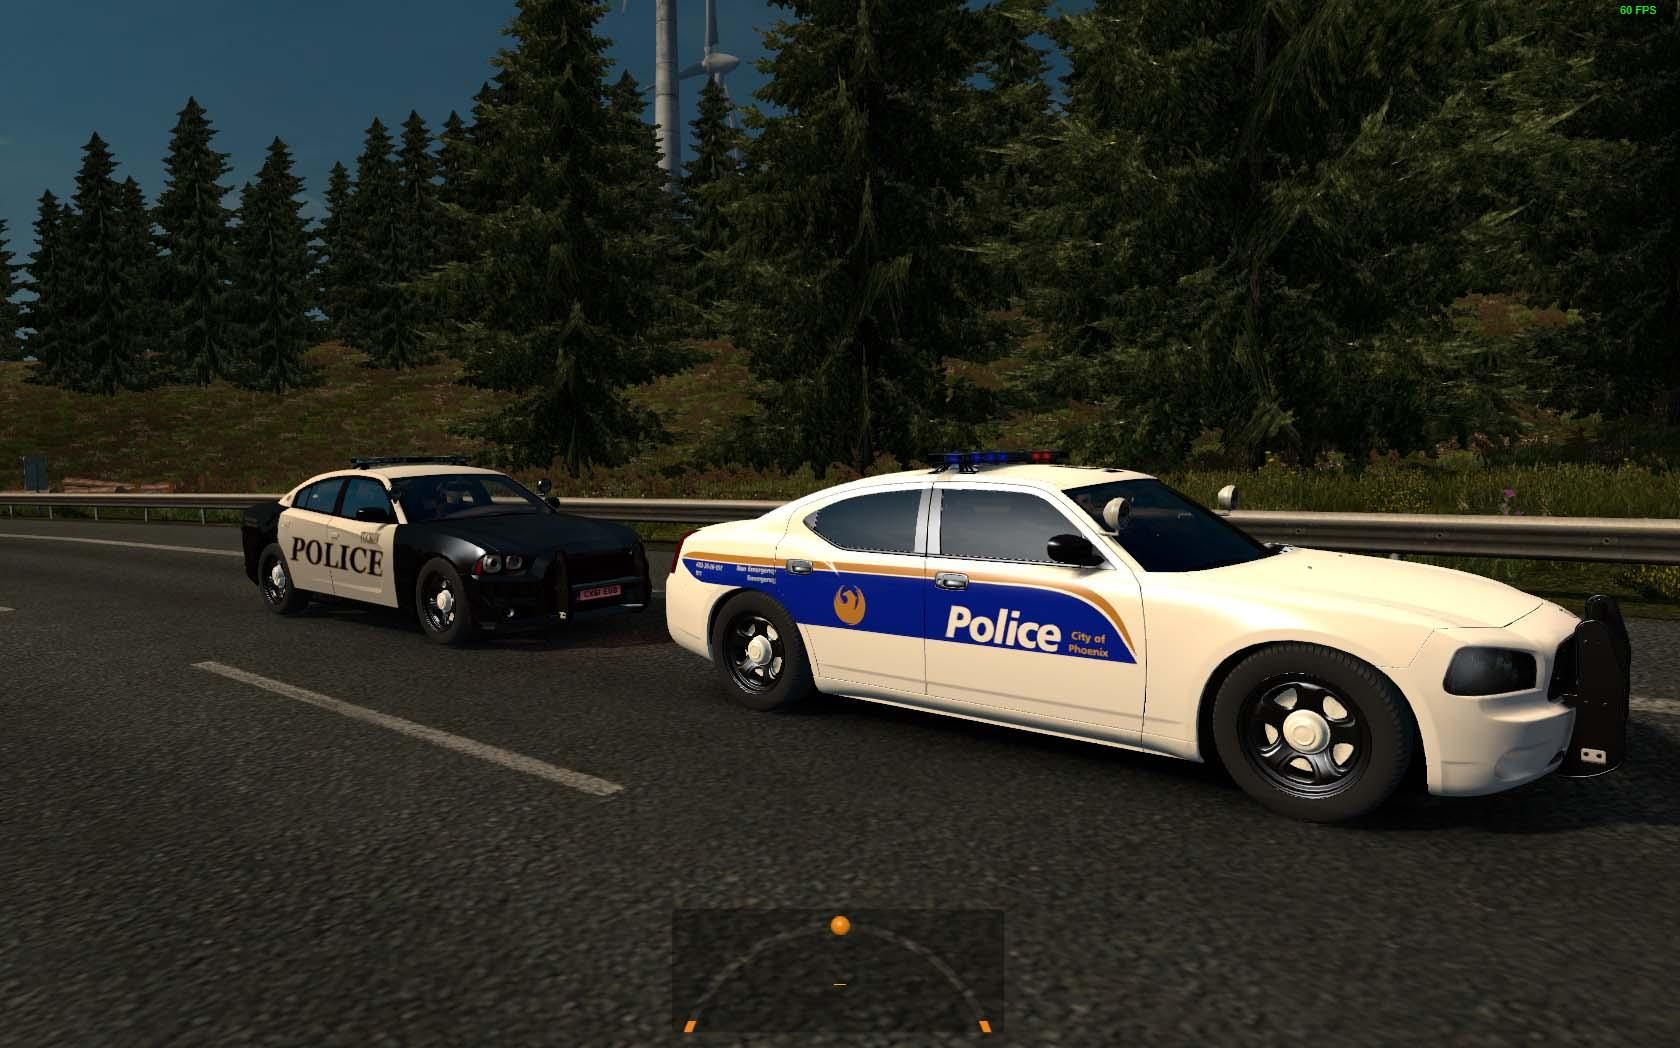 USA POLICE TRAFFIC 1 26 MOD - ETS2 Mod